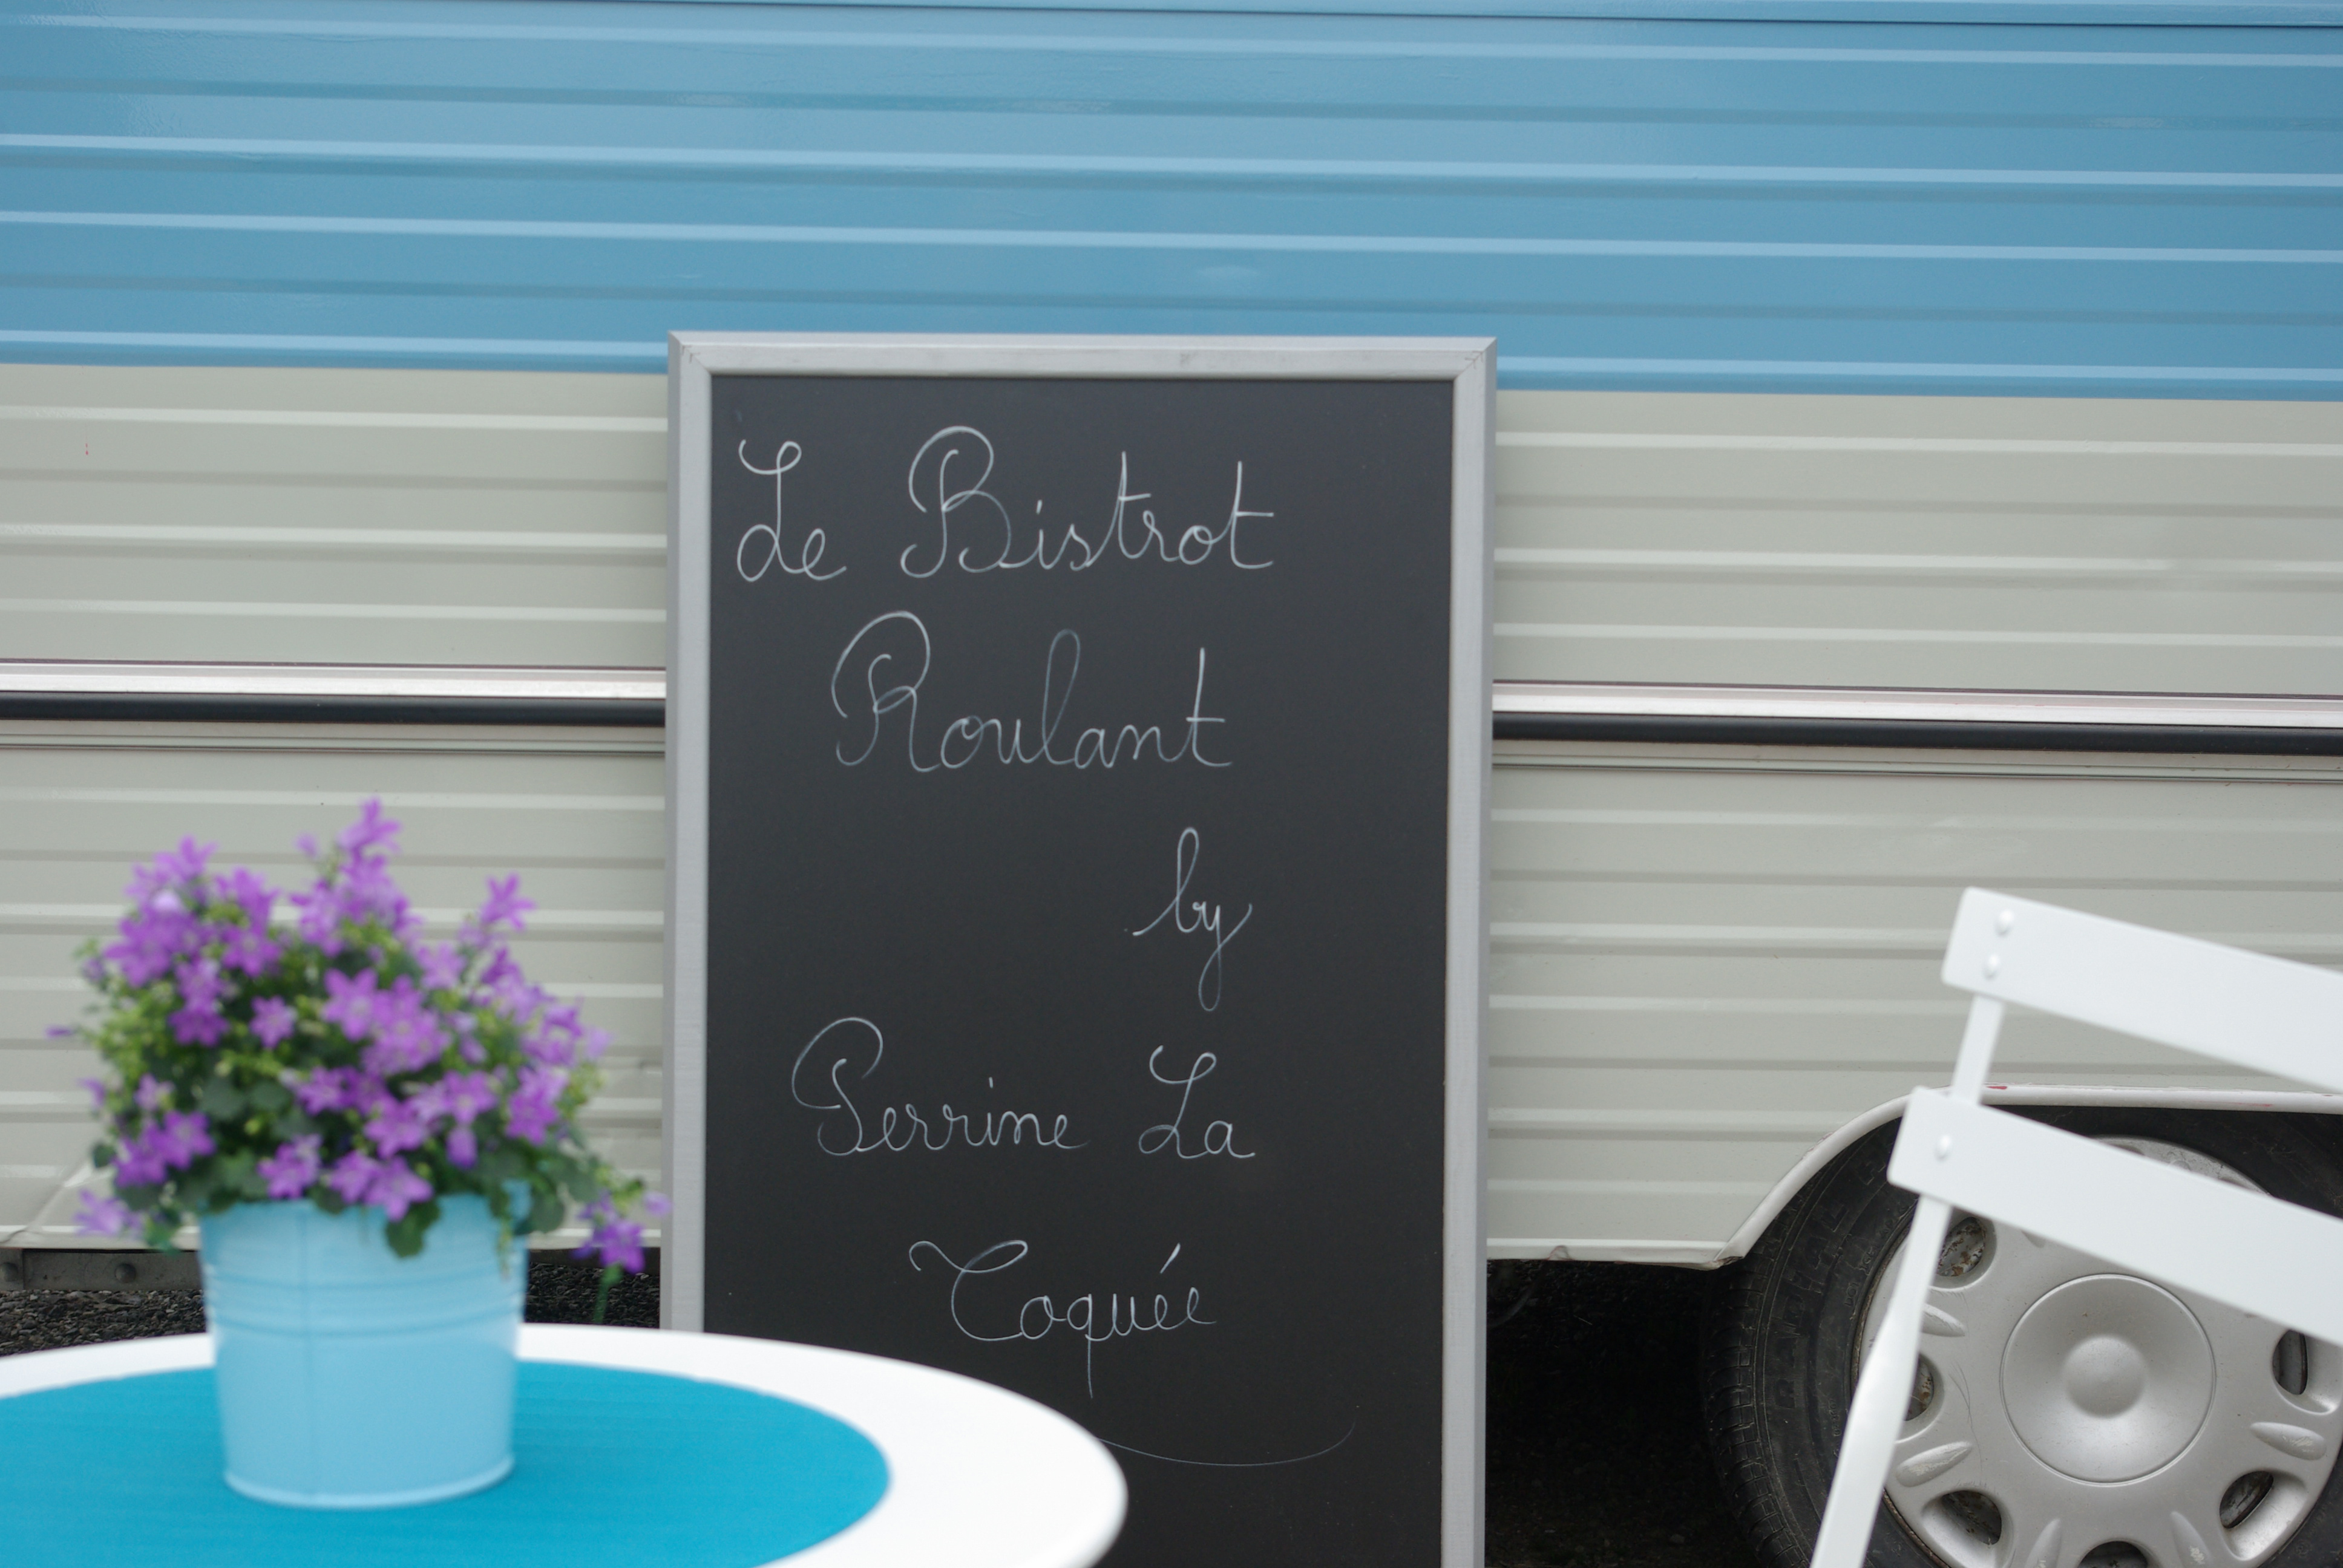 Le Bistrot Roulant